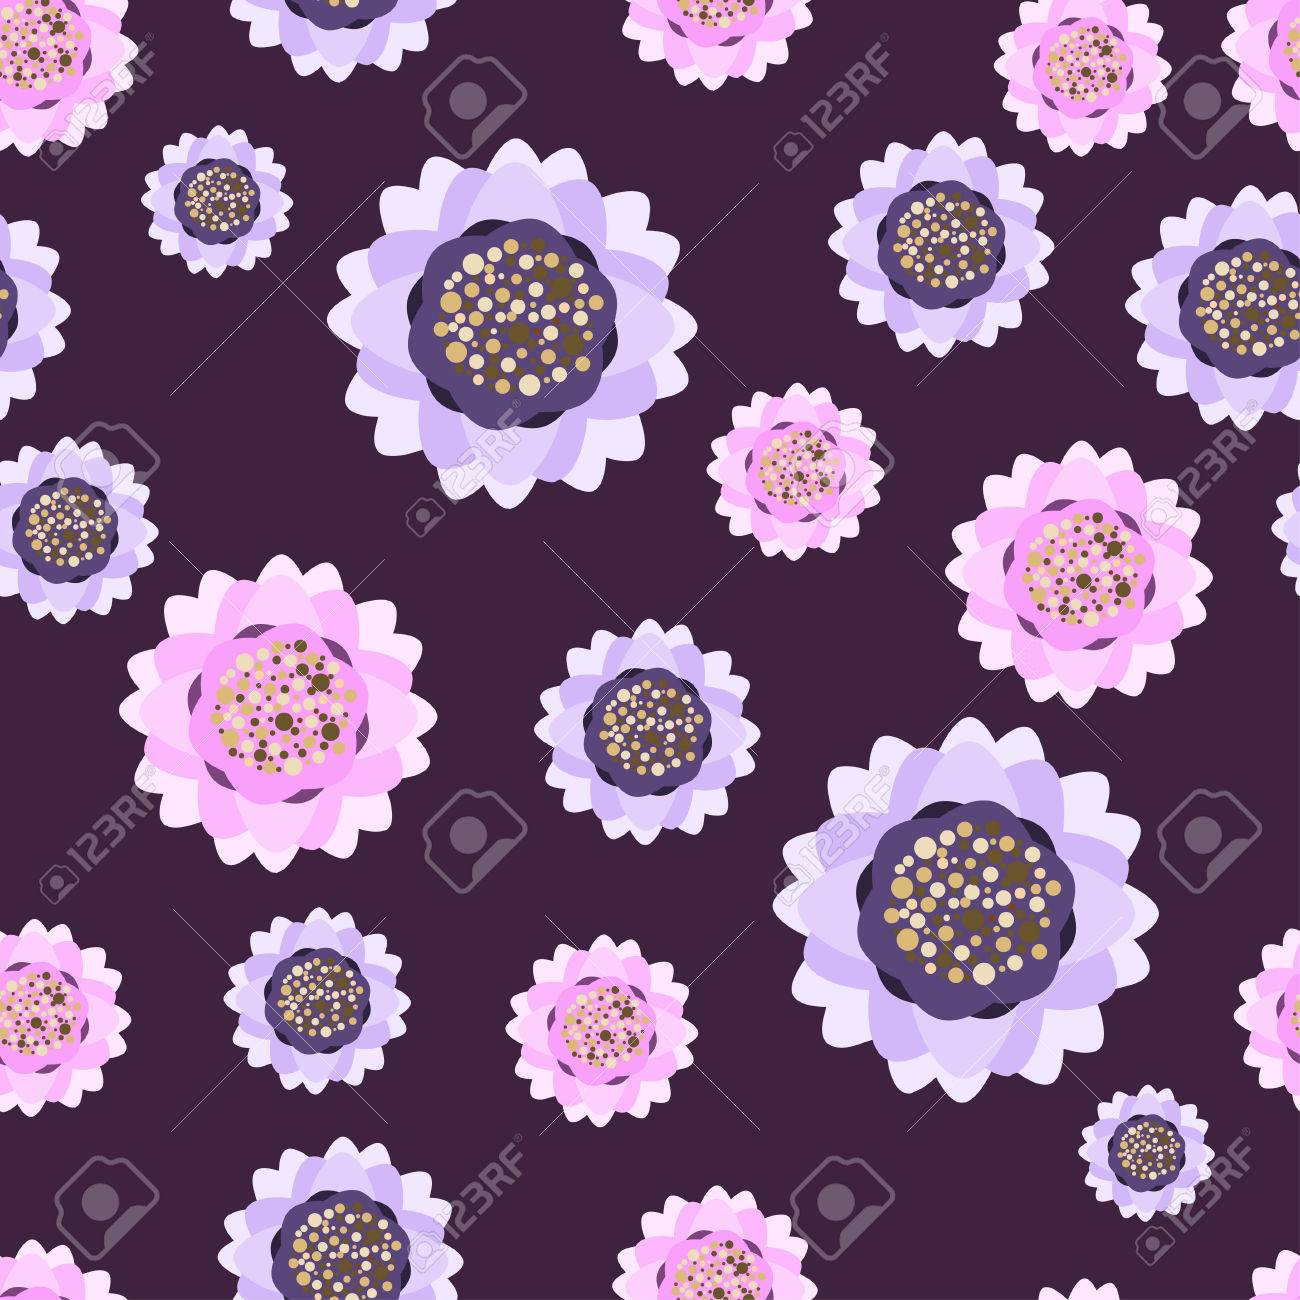 Flower Water Lily Seamless Pattern For Fabric Print Wallpaper